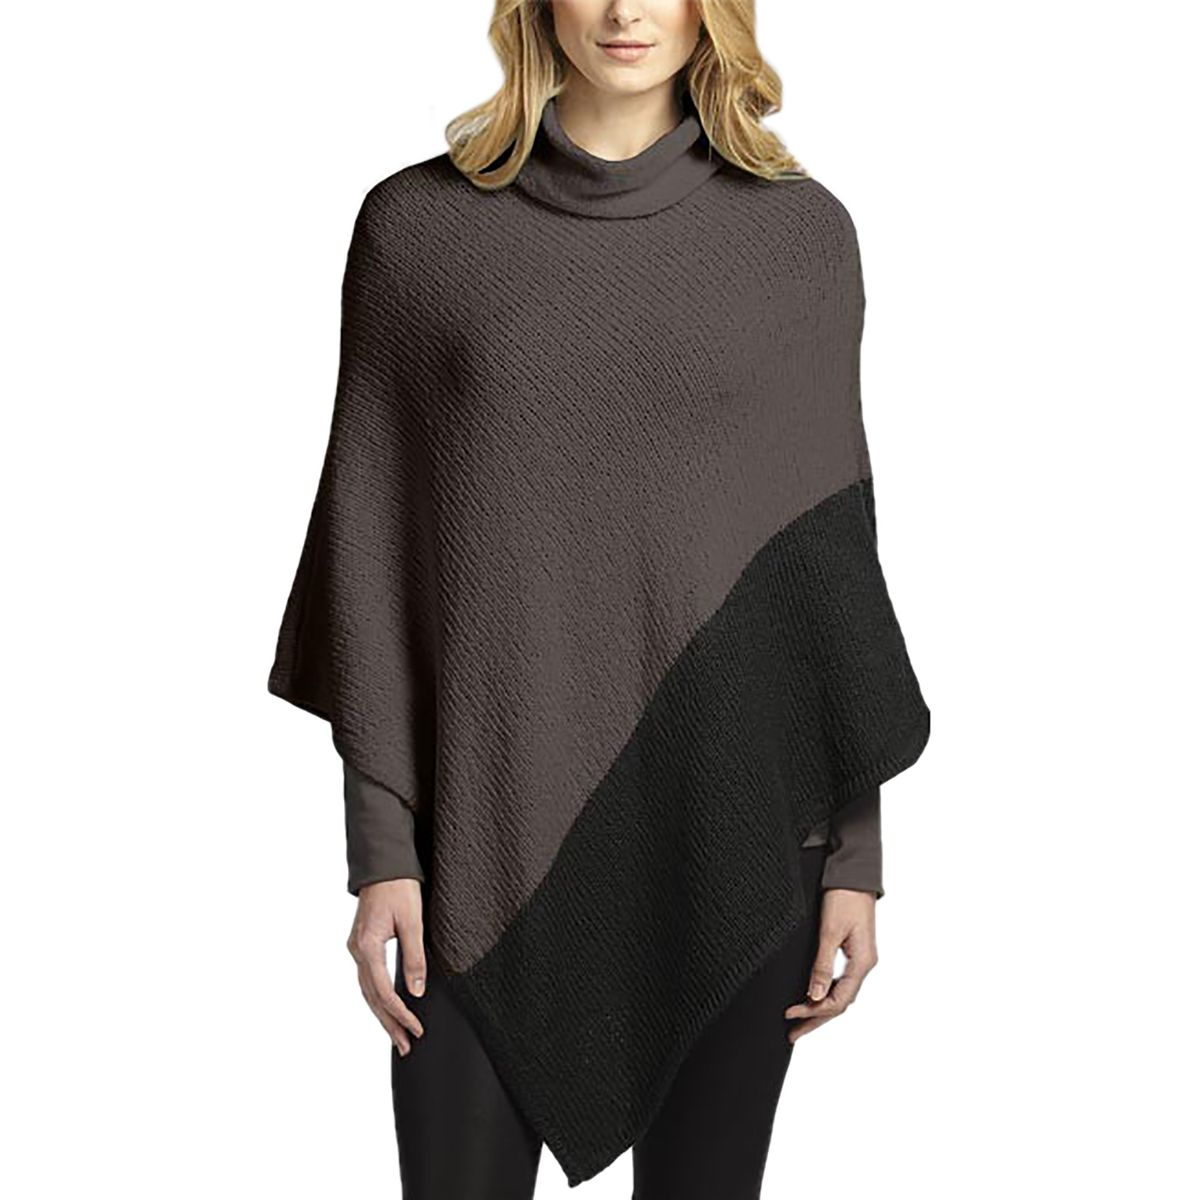 Indigenous Designs 2 Tone Poncho  Womens